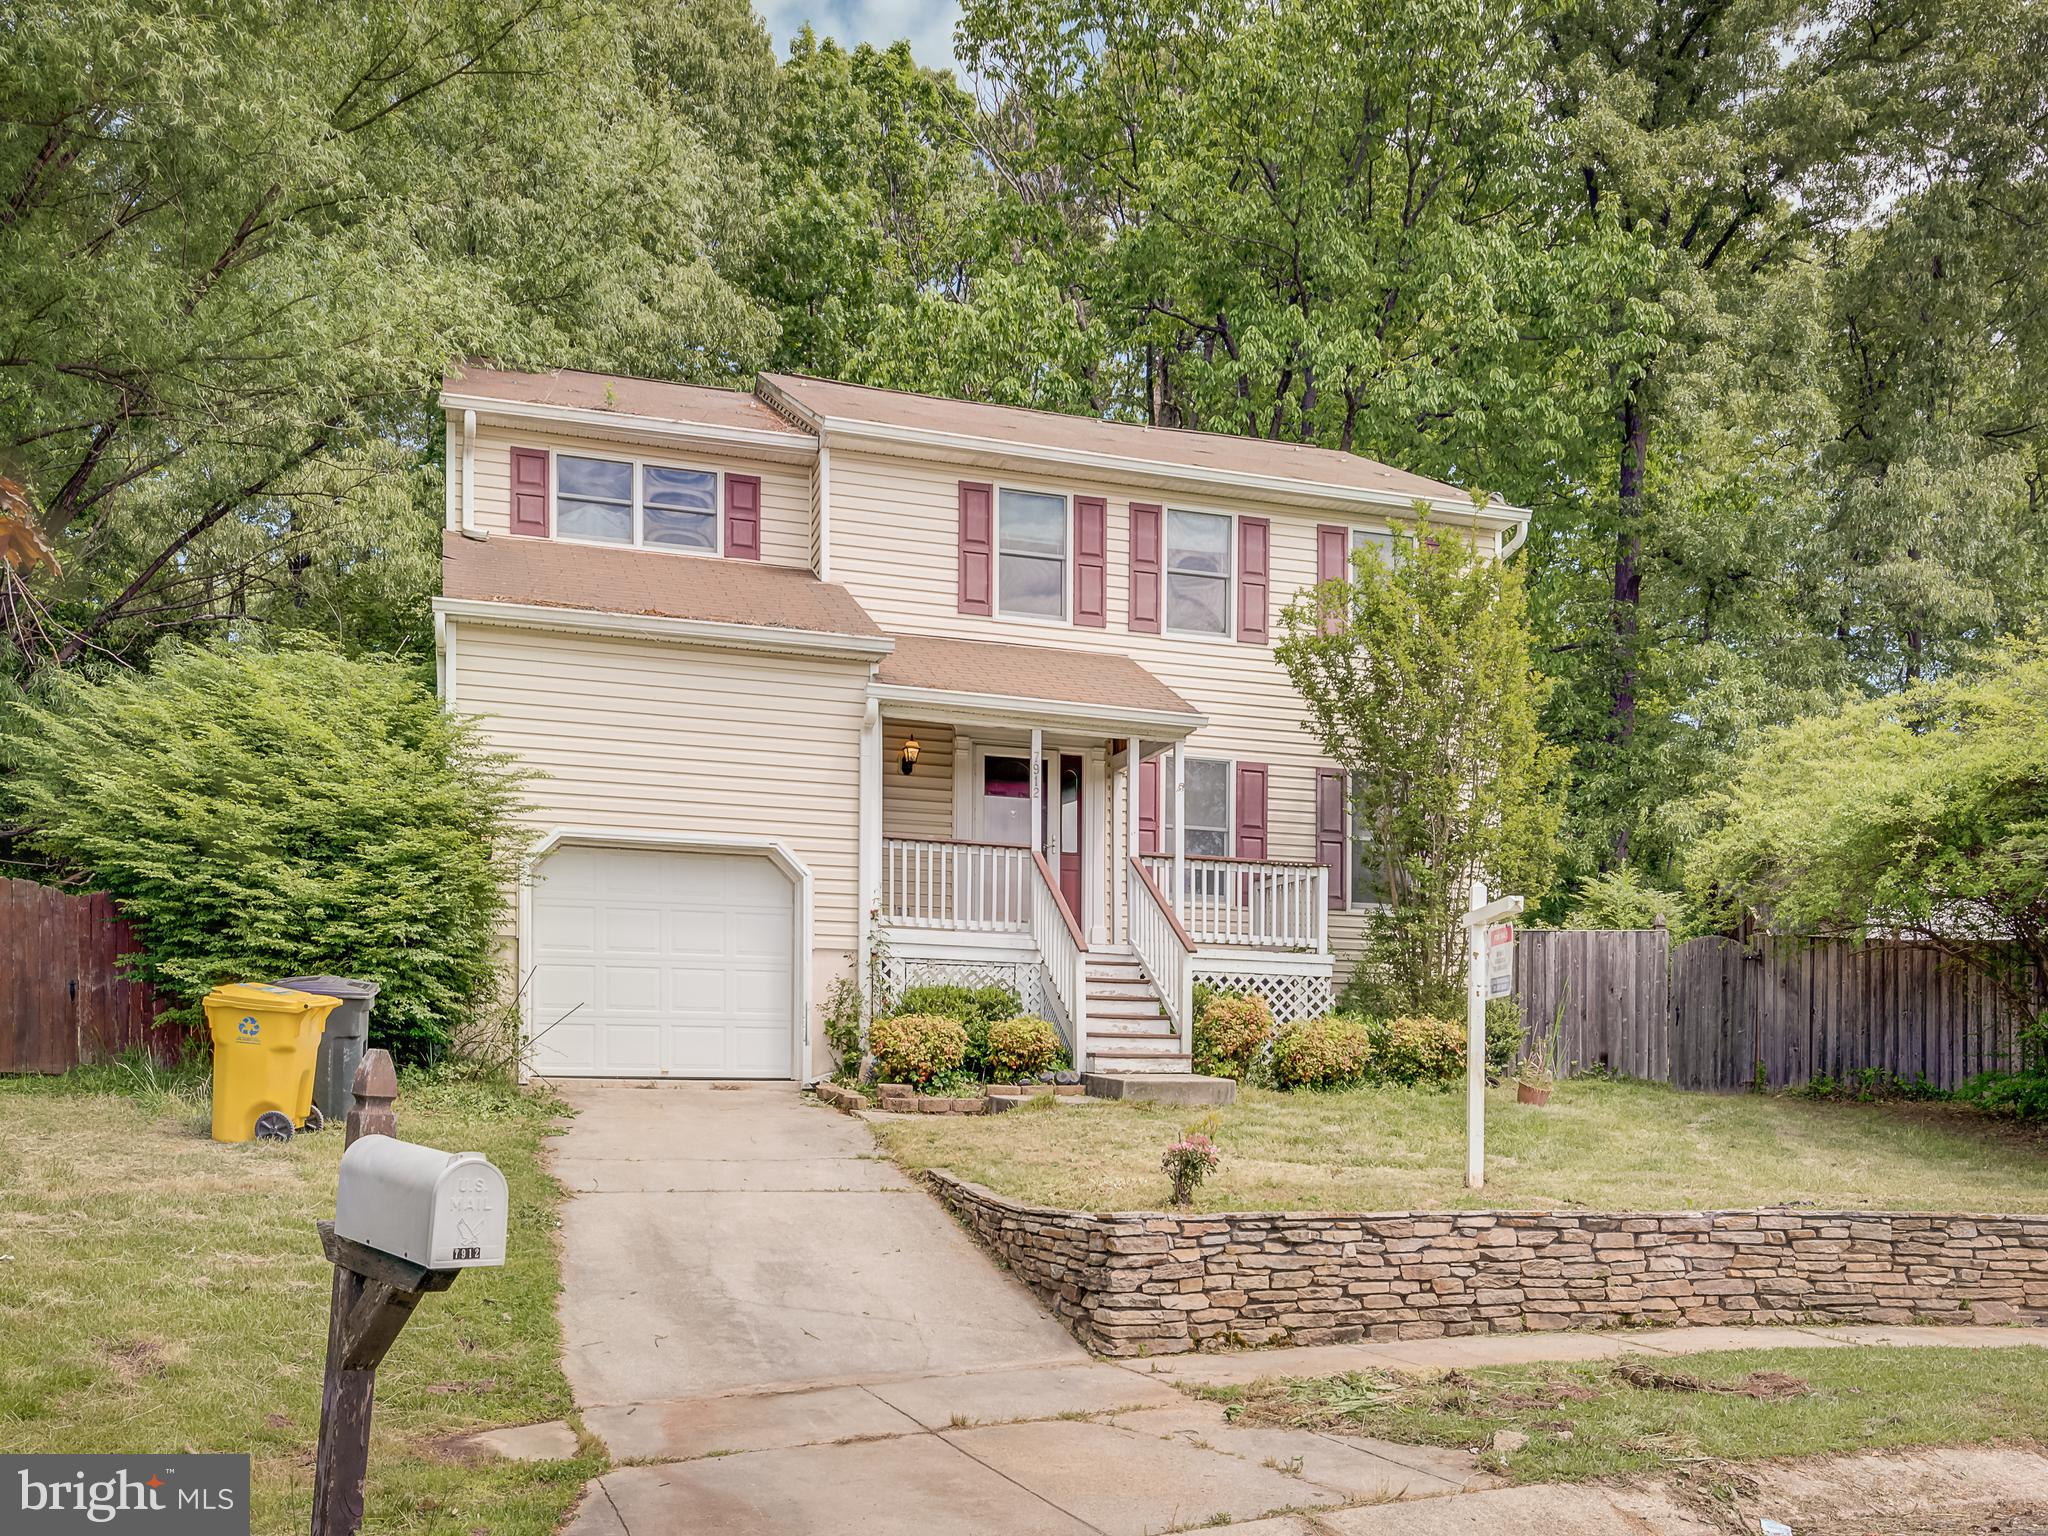 ***HIGHEST AND BEST DUE BY MONDAY AT NOON*****This super nice Colonial needs a little TLC to make it